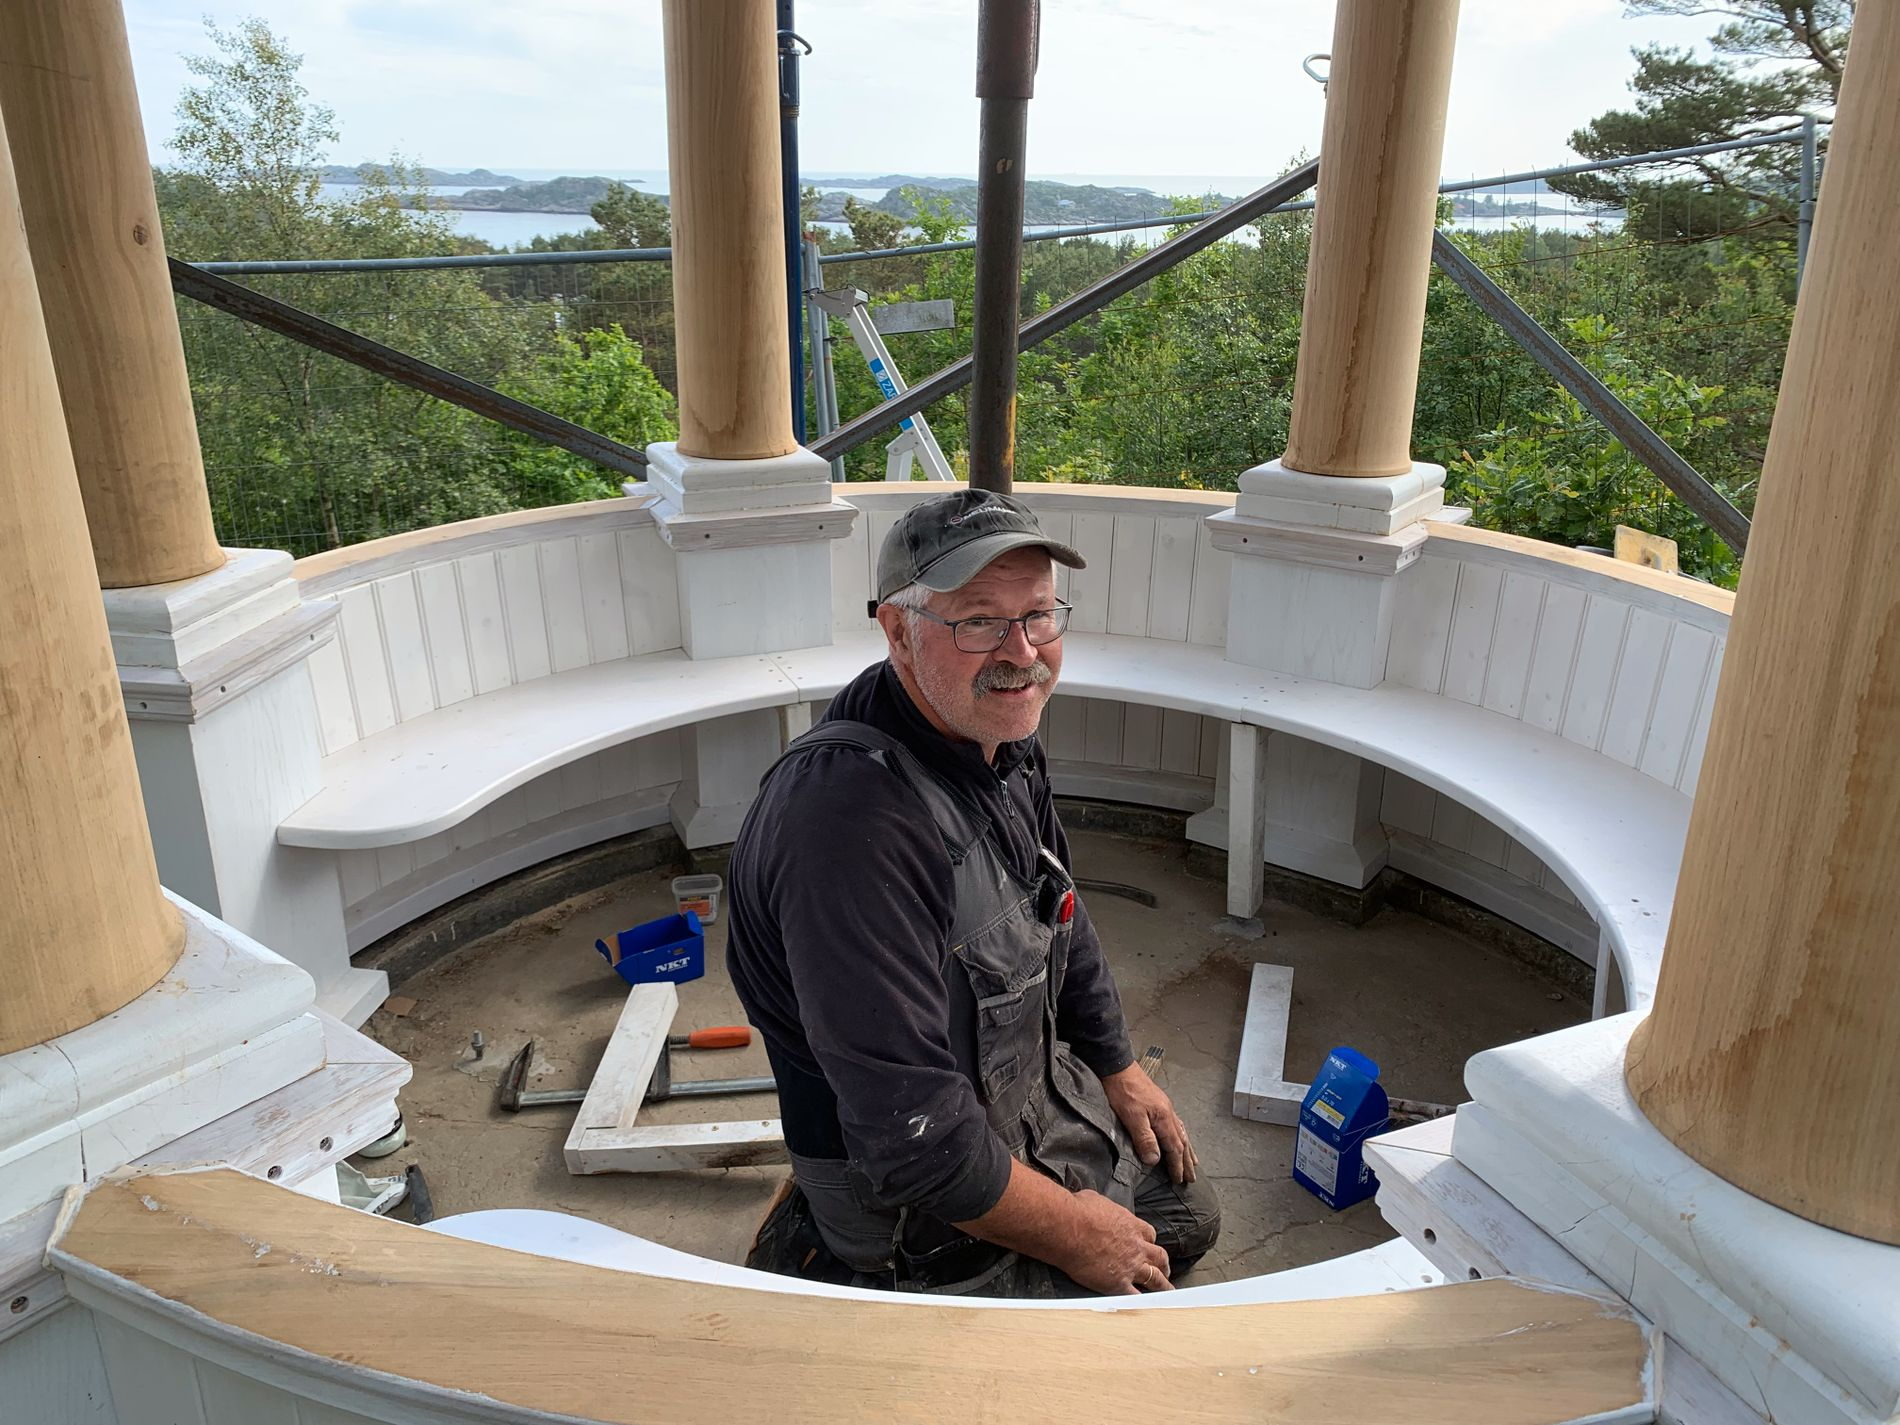 Builder Harald Lund during the renovation.